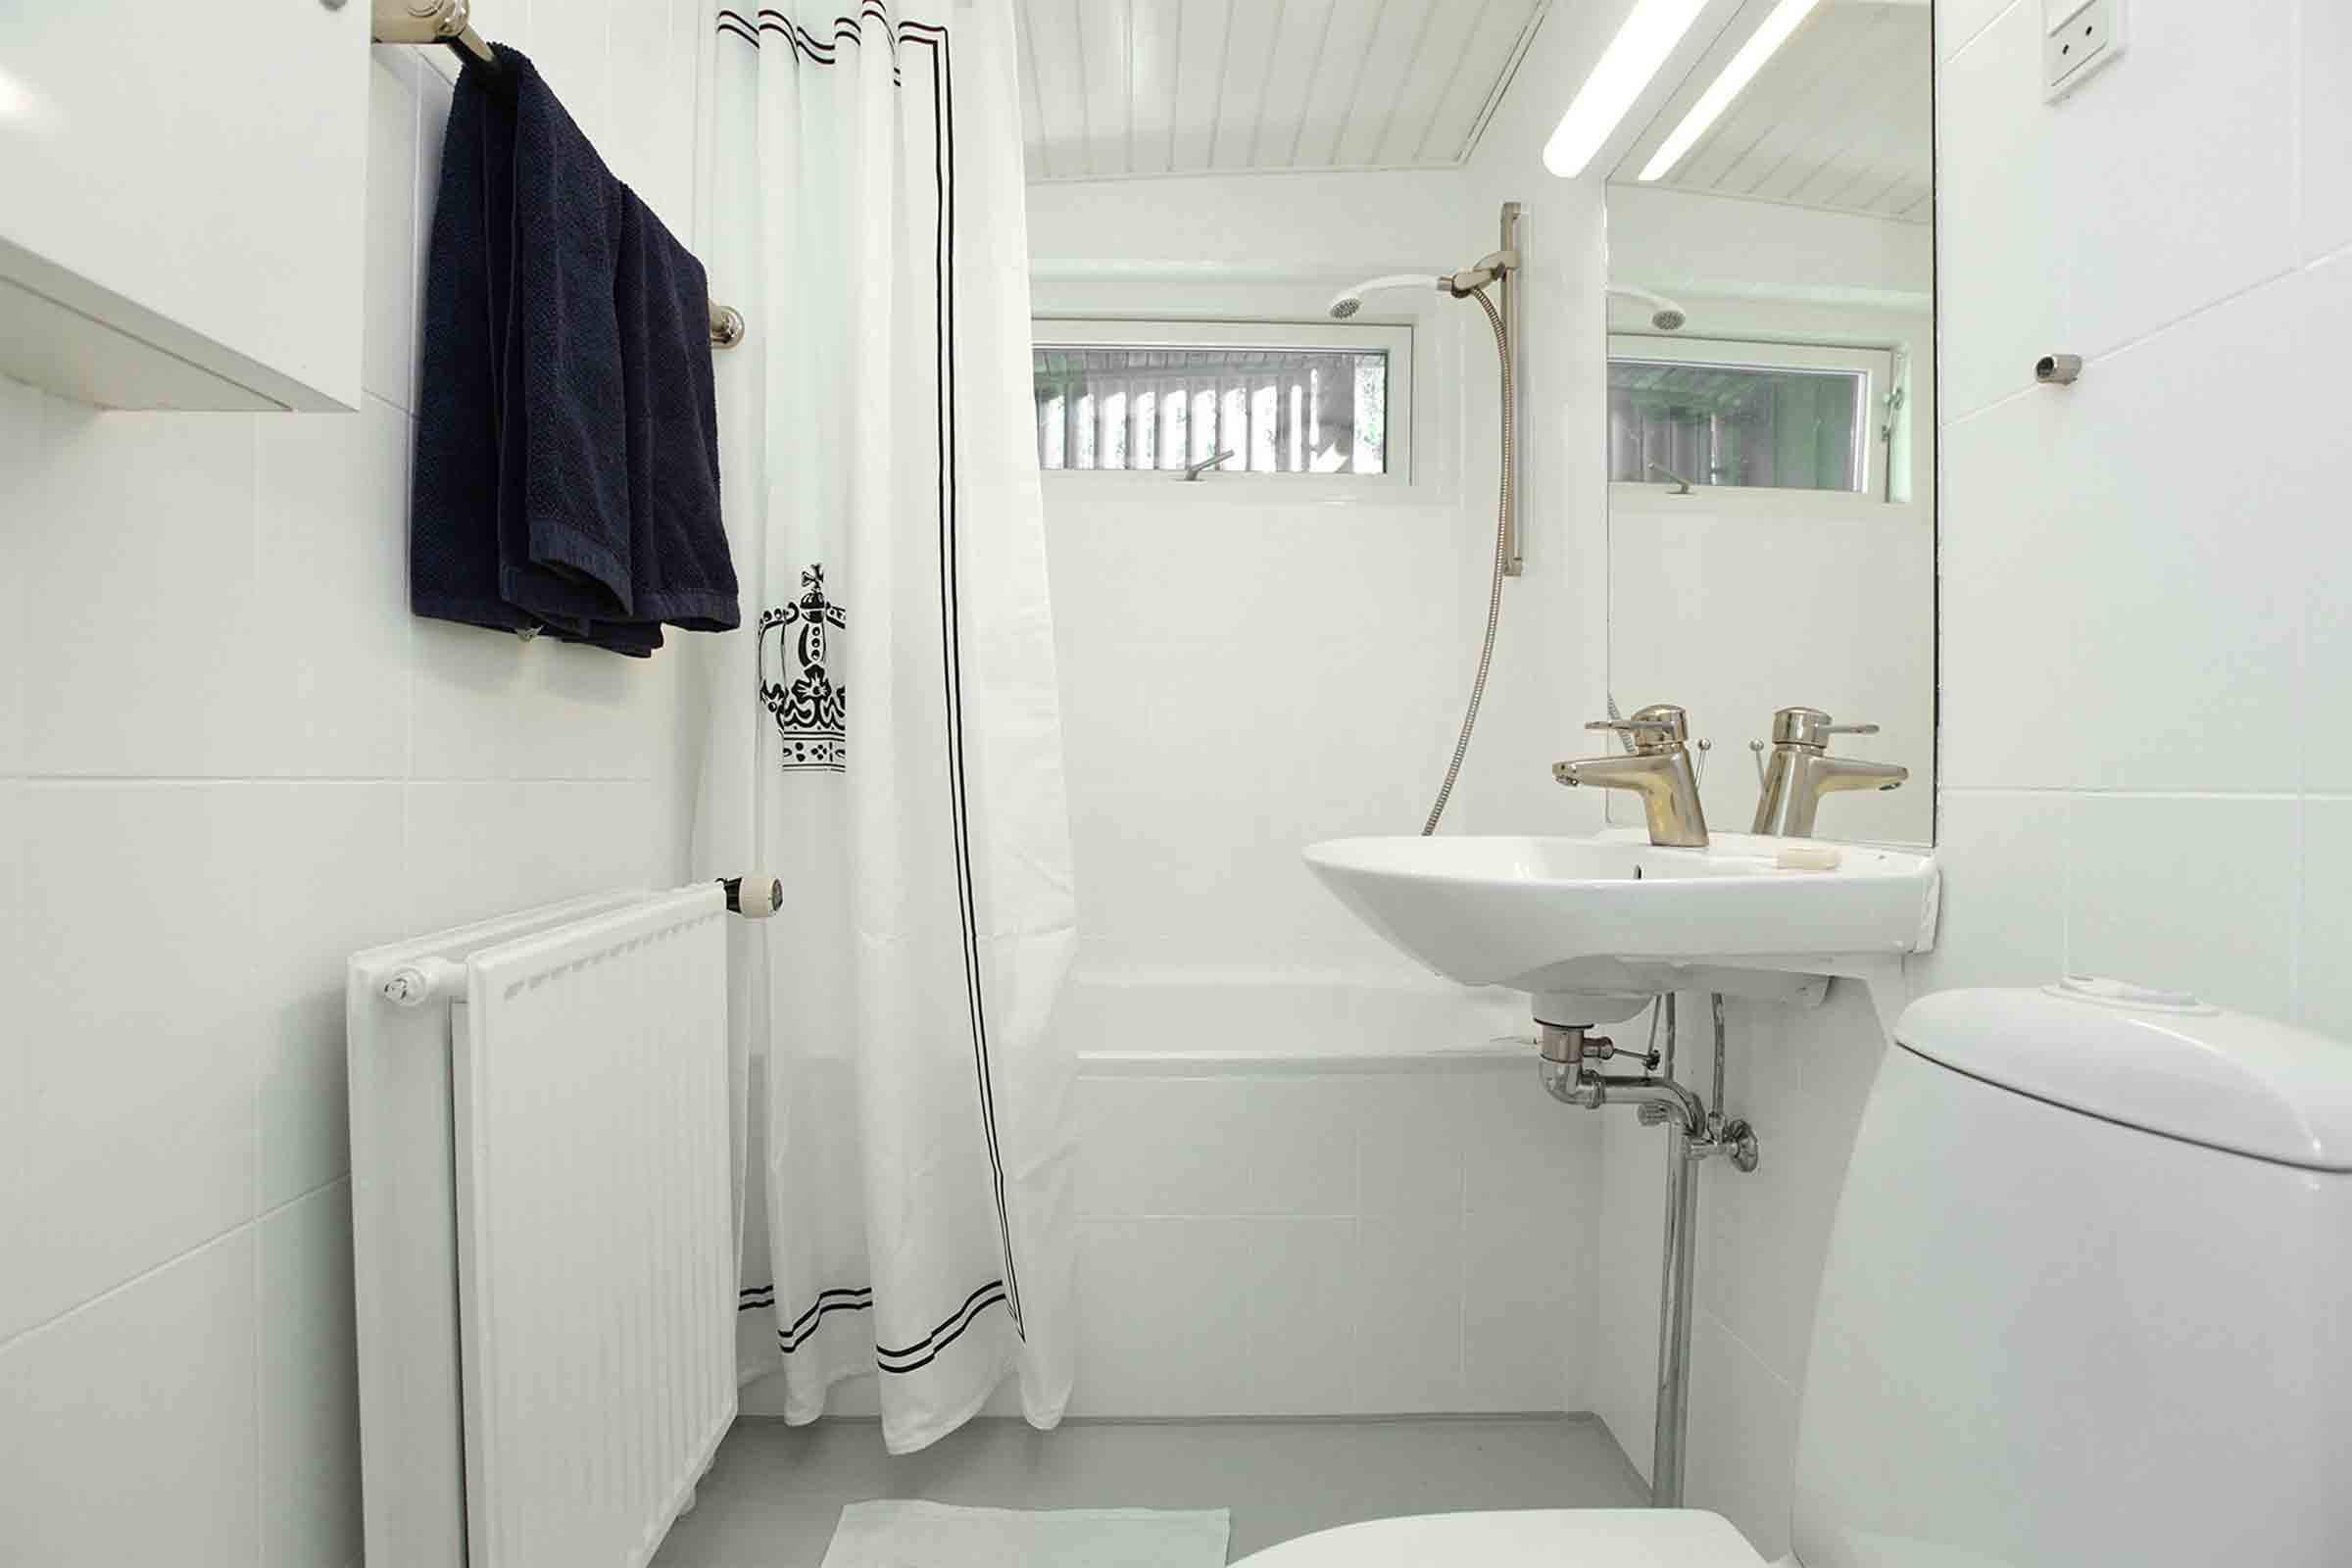 Private bathroom with toiletries, sink, bathtub, heater and toilet bowl